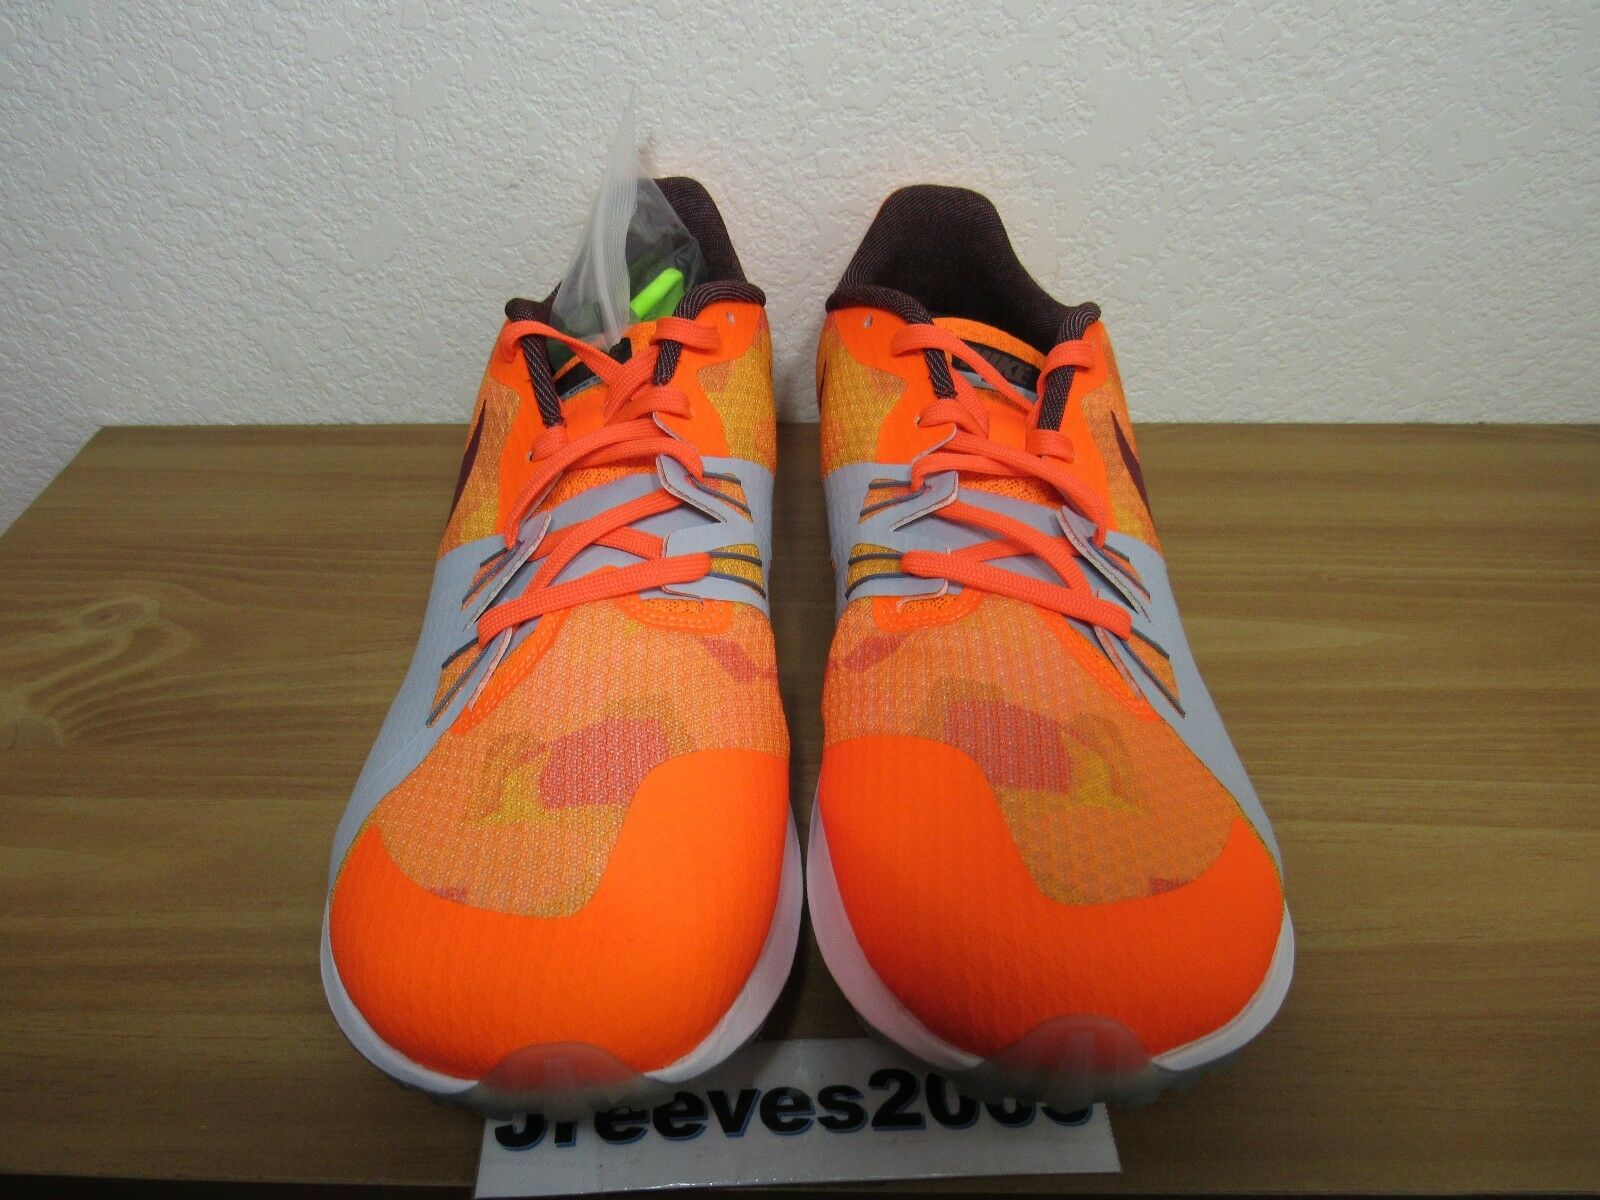 promo code 24def 354aa Nike Zoom Rival XC Mens Spikes Cross Country Racing 904718 806 Orange Size  13 for sale online   eBay